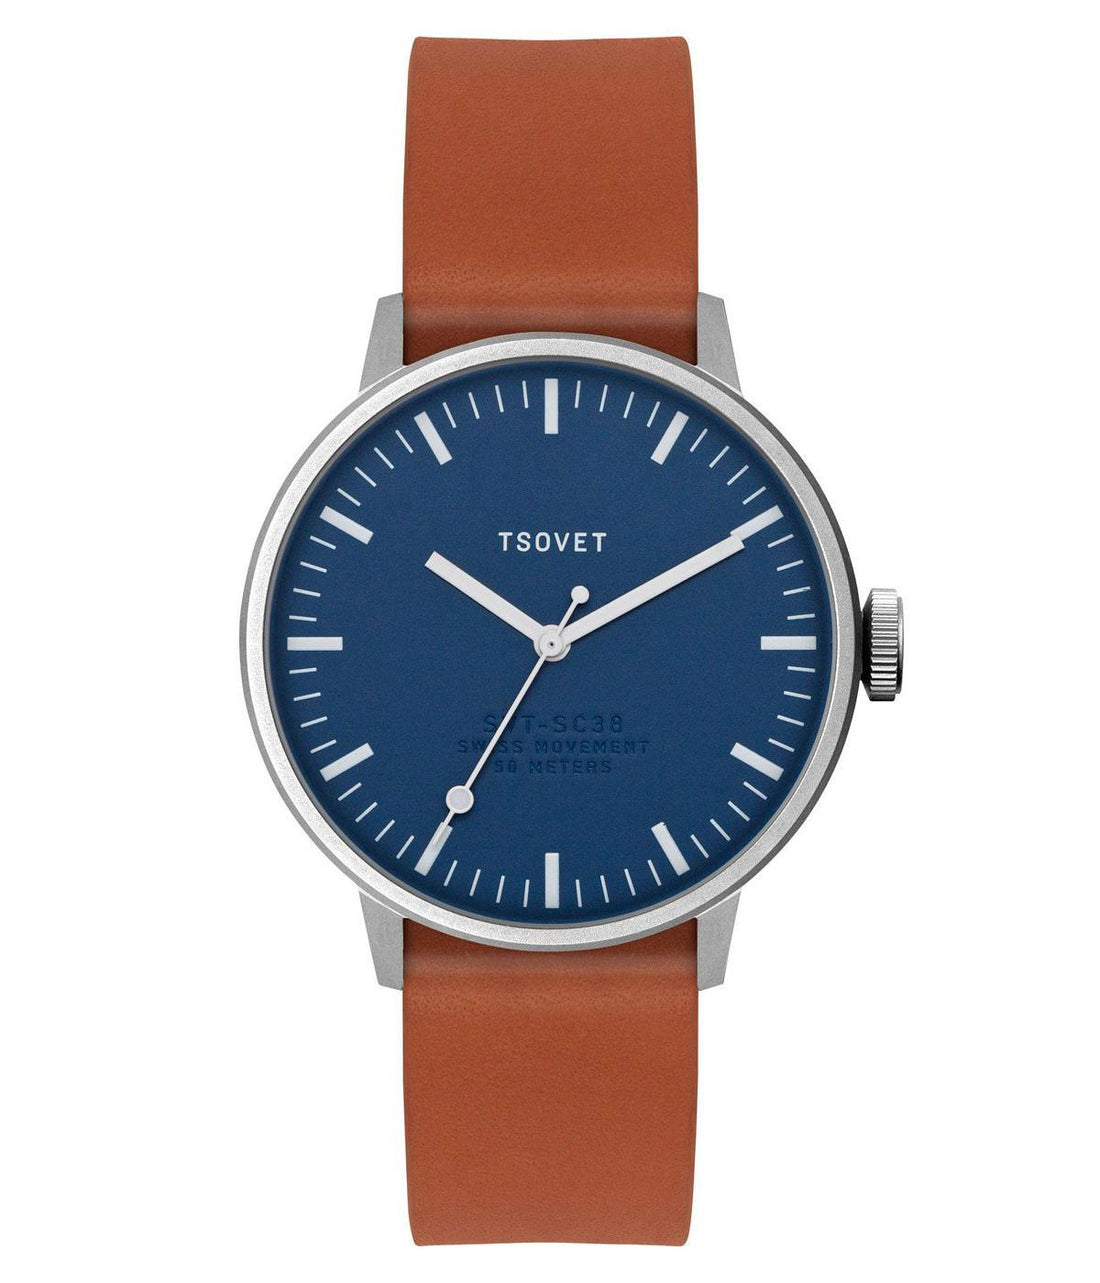 TSOVET SVT-SC38 - Accessories: Watches - Iron and Resin